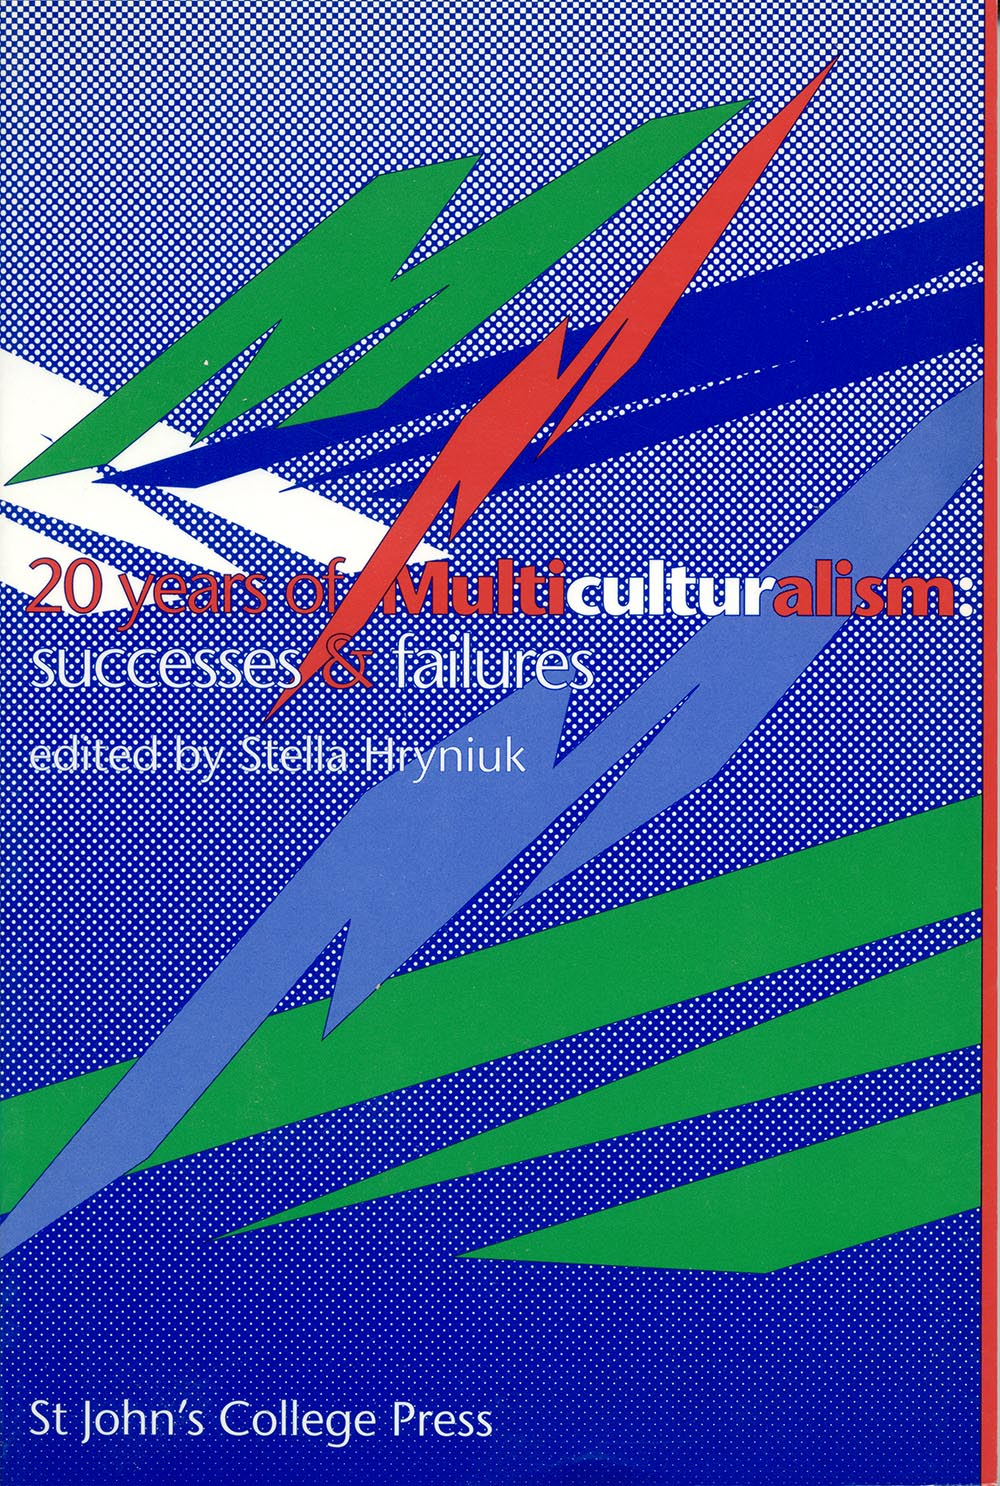 20 Years of Multiculturalism edited by Stella Hryniuk